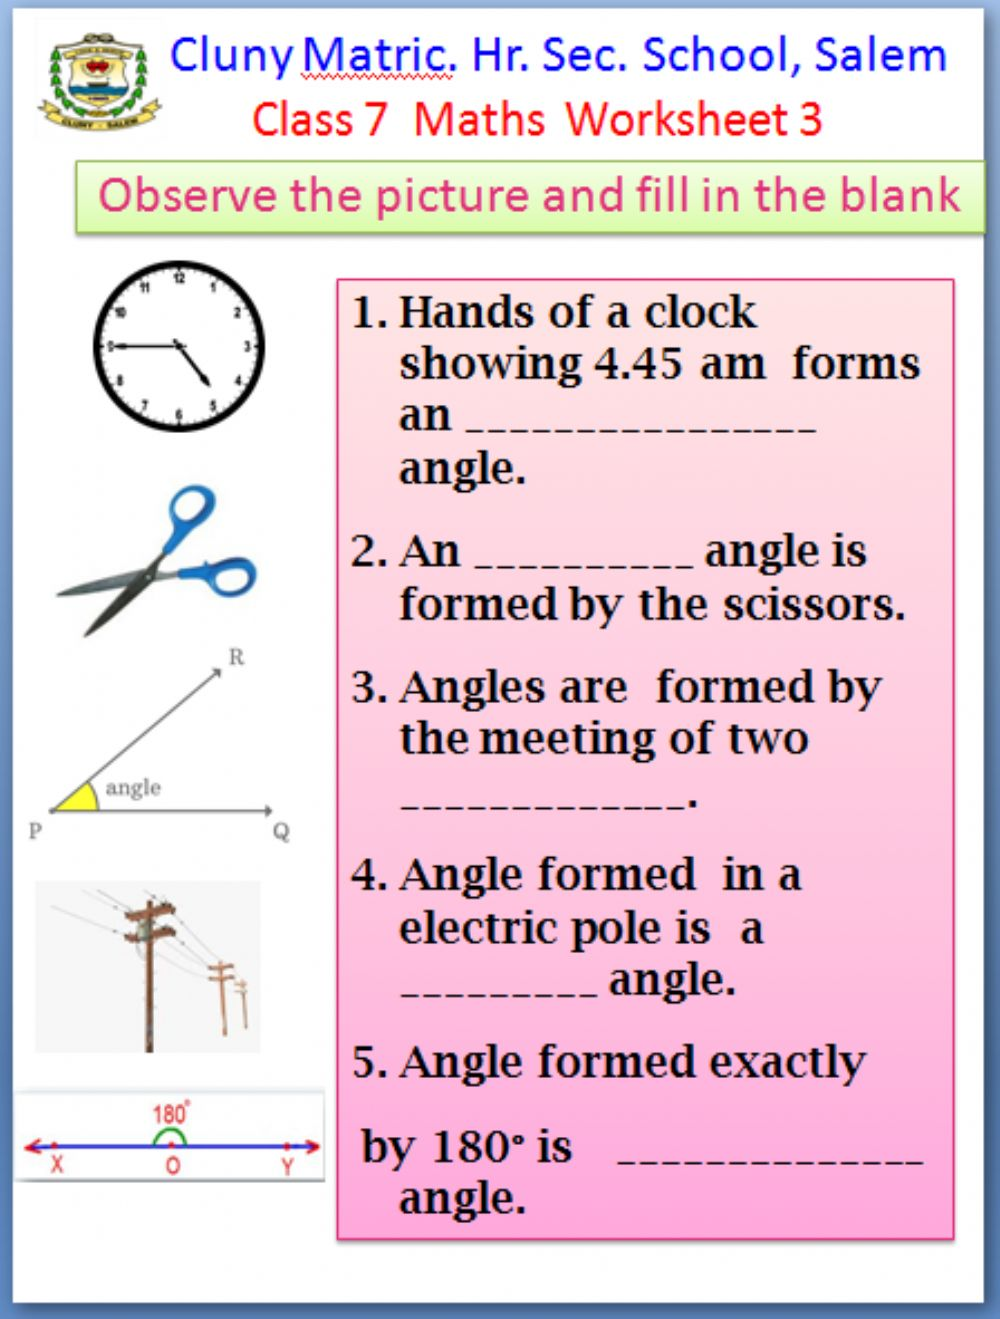 hight resolution of Class 7 Maths worksheet